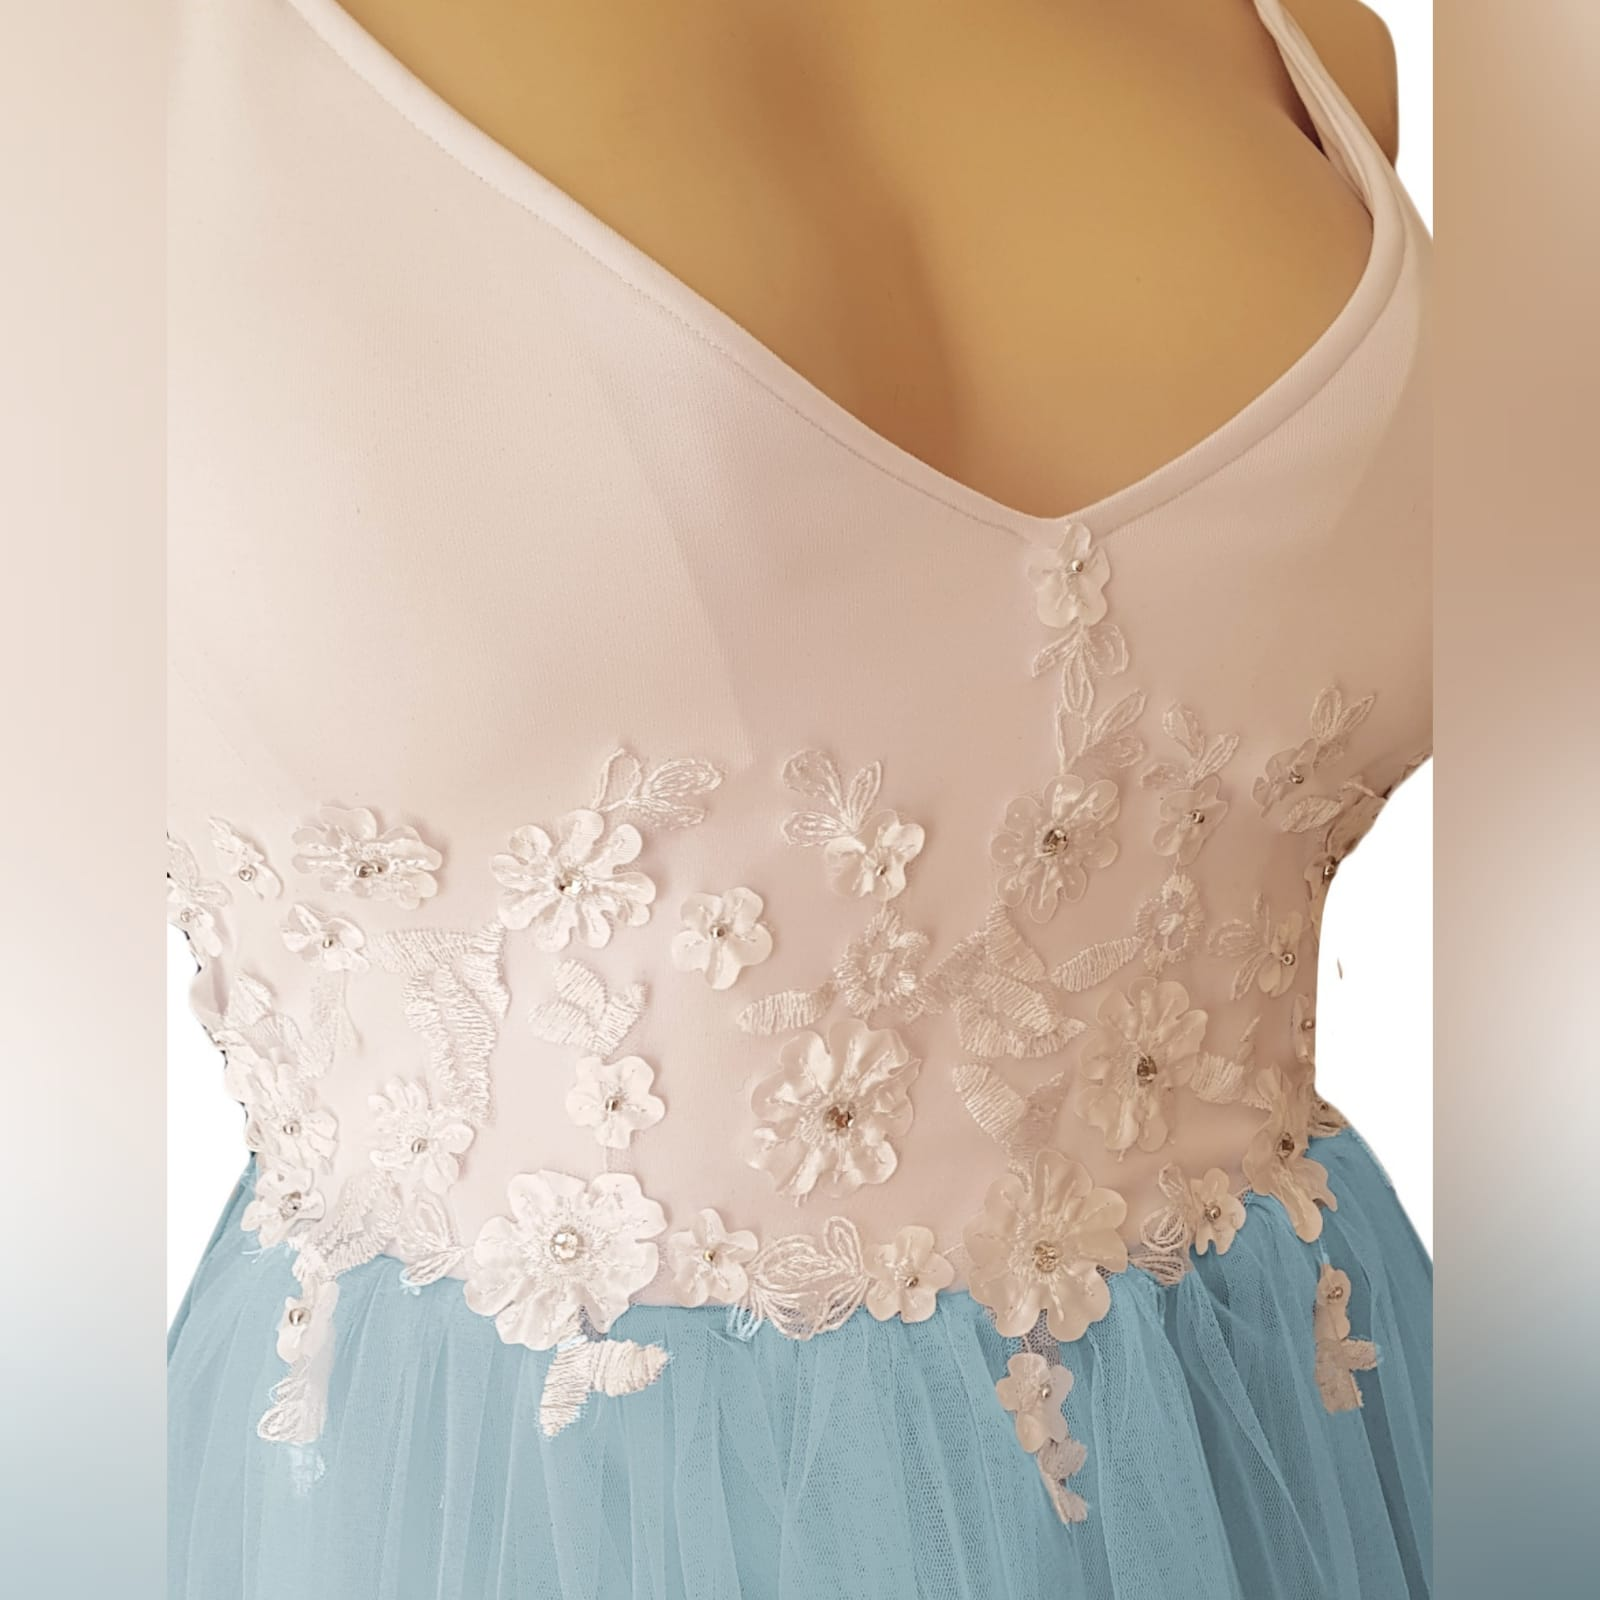 Powder blue and white prom ball gown dress 7 powder blue and white prom ball gown dress detailed with white 3d lace and beads with a low back and thin shoulder straps. With a train.